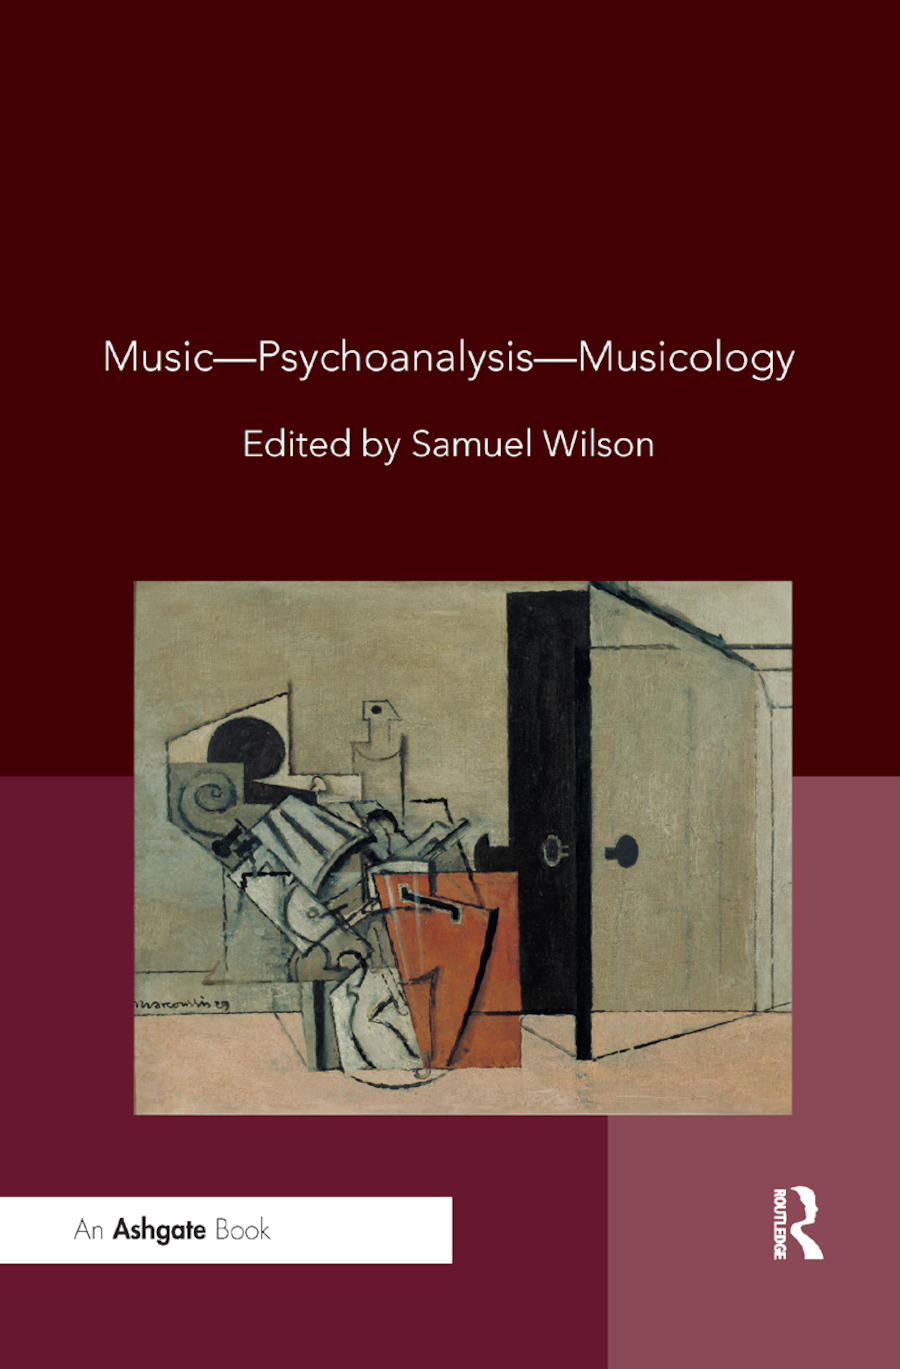 Music—Psychoanalysis—Musicology